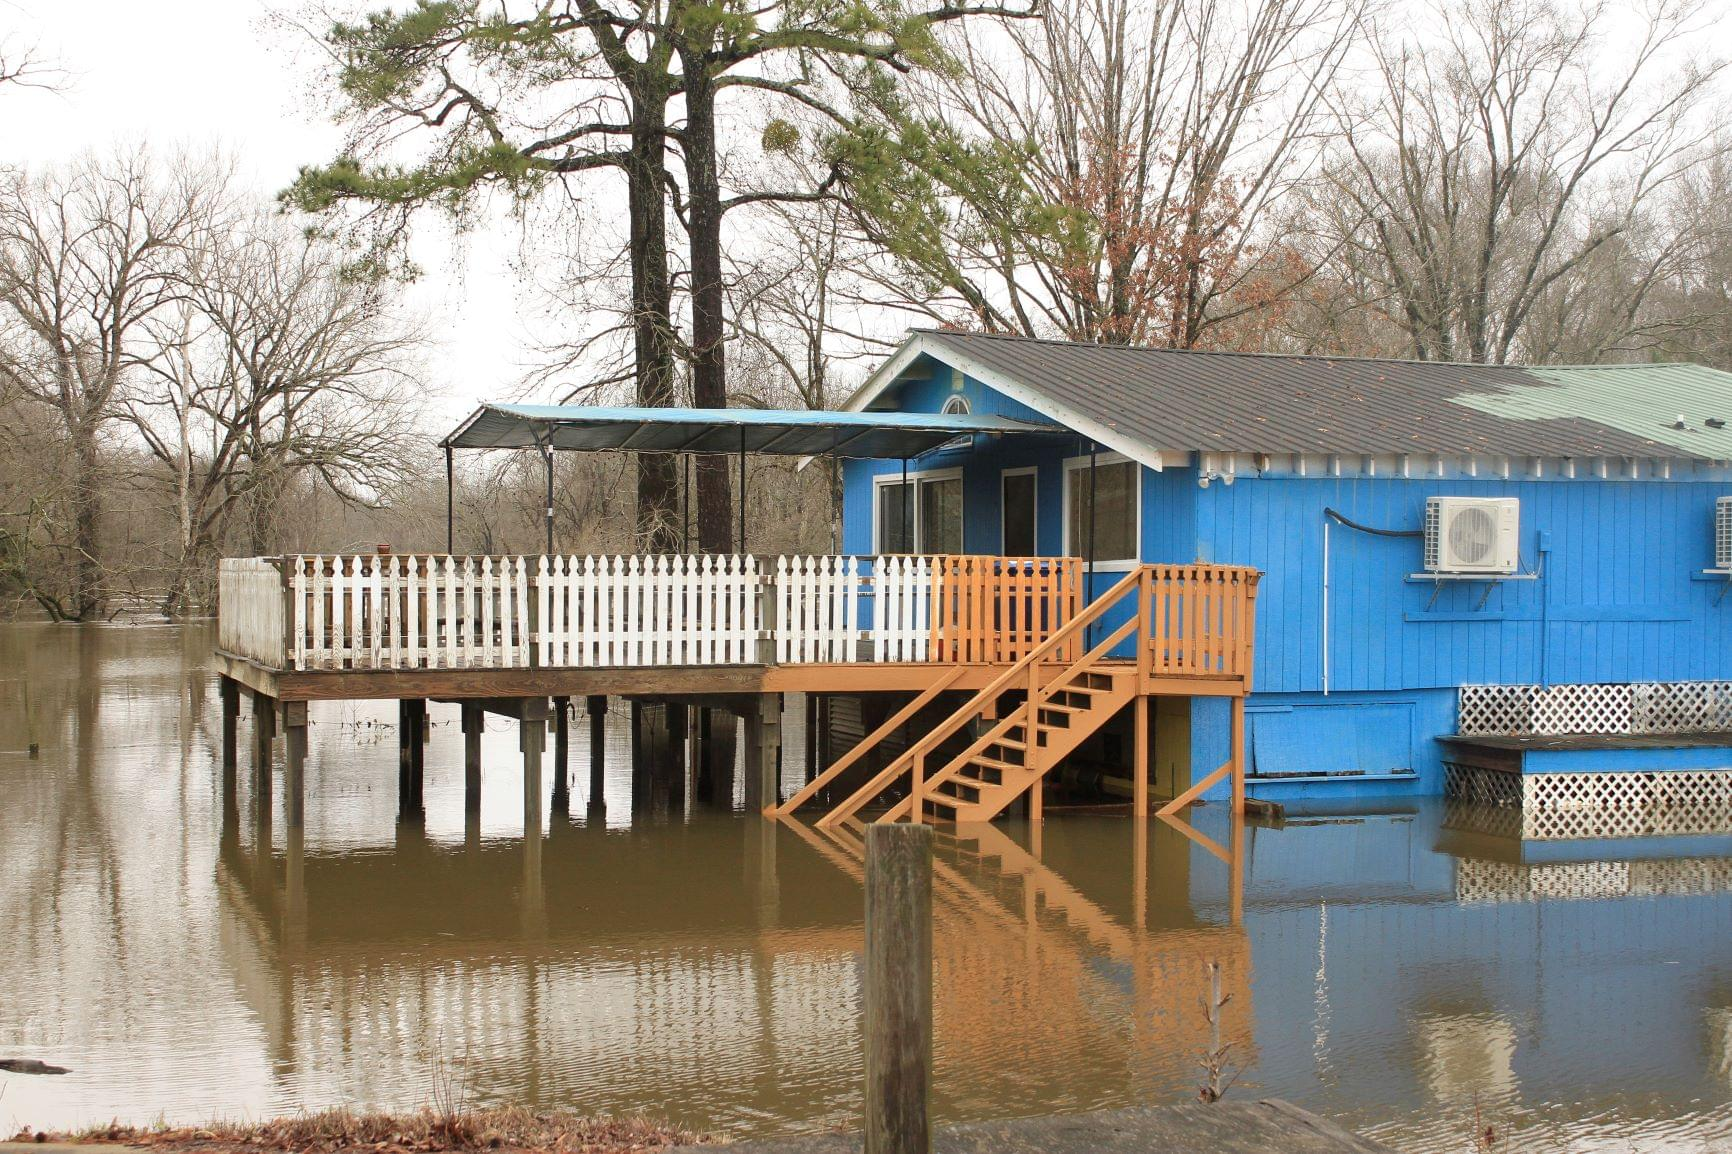 Flooding Means Insurance Rates Could Spike For Some